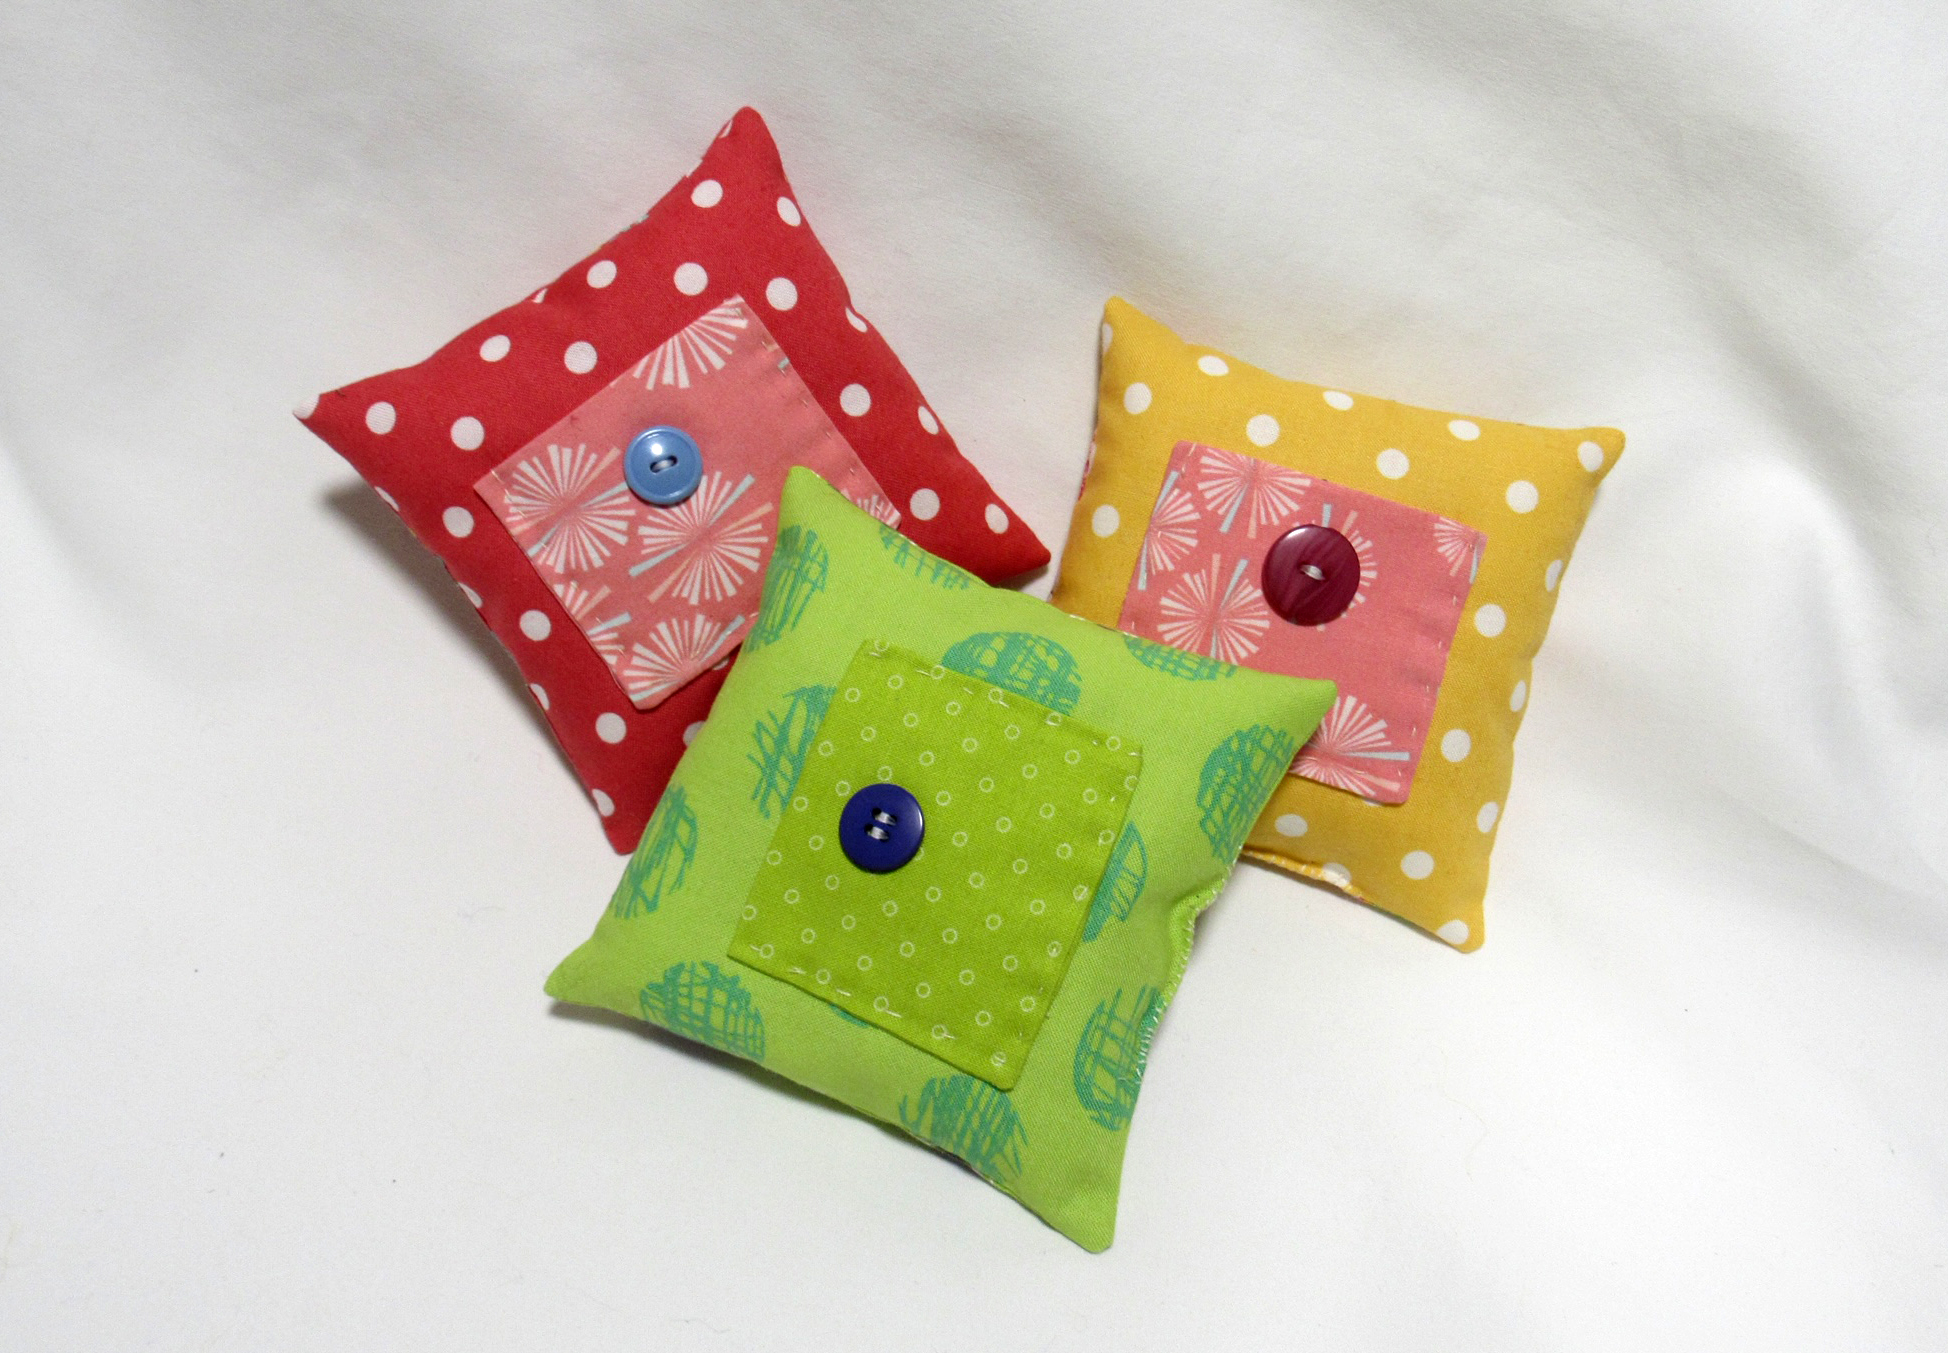 Lorie_3Pillows